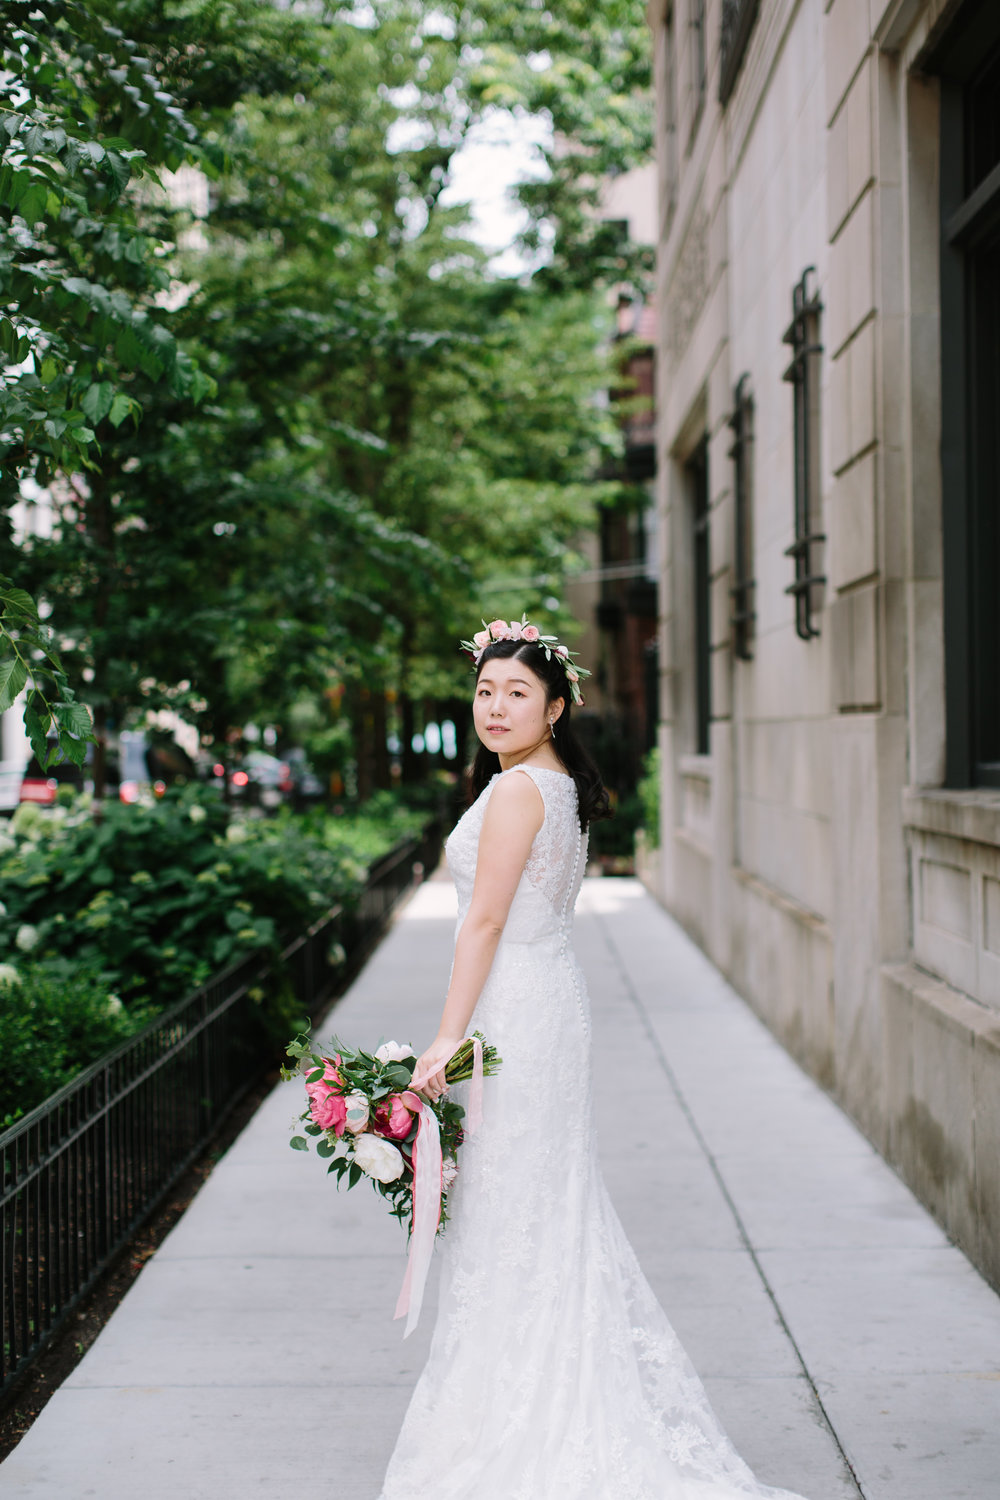 Nicodem Creative-Wang Wedding-Public Hotel Chicago-16.jpg